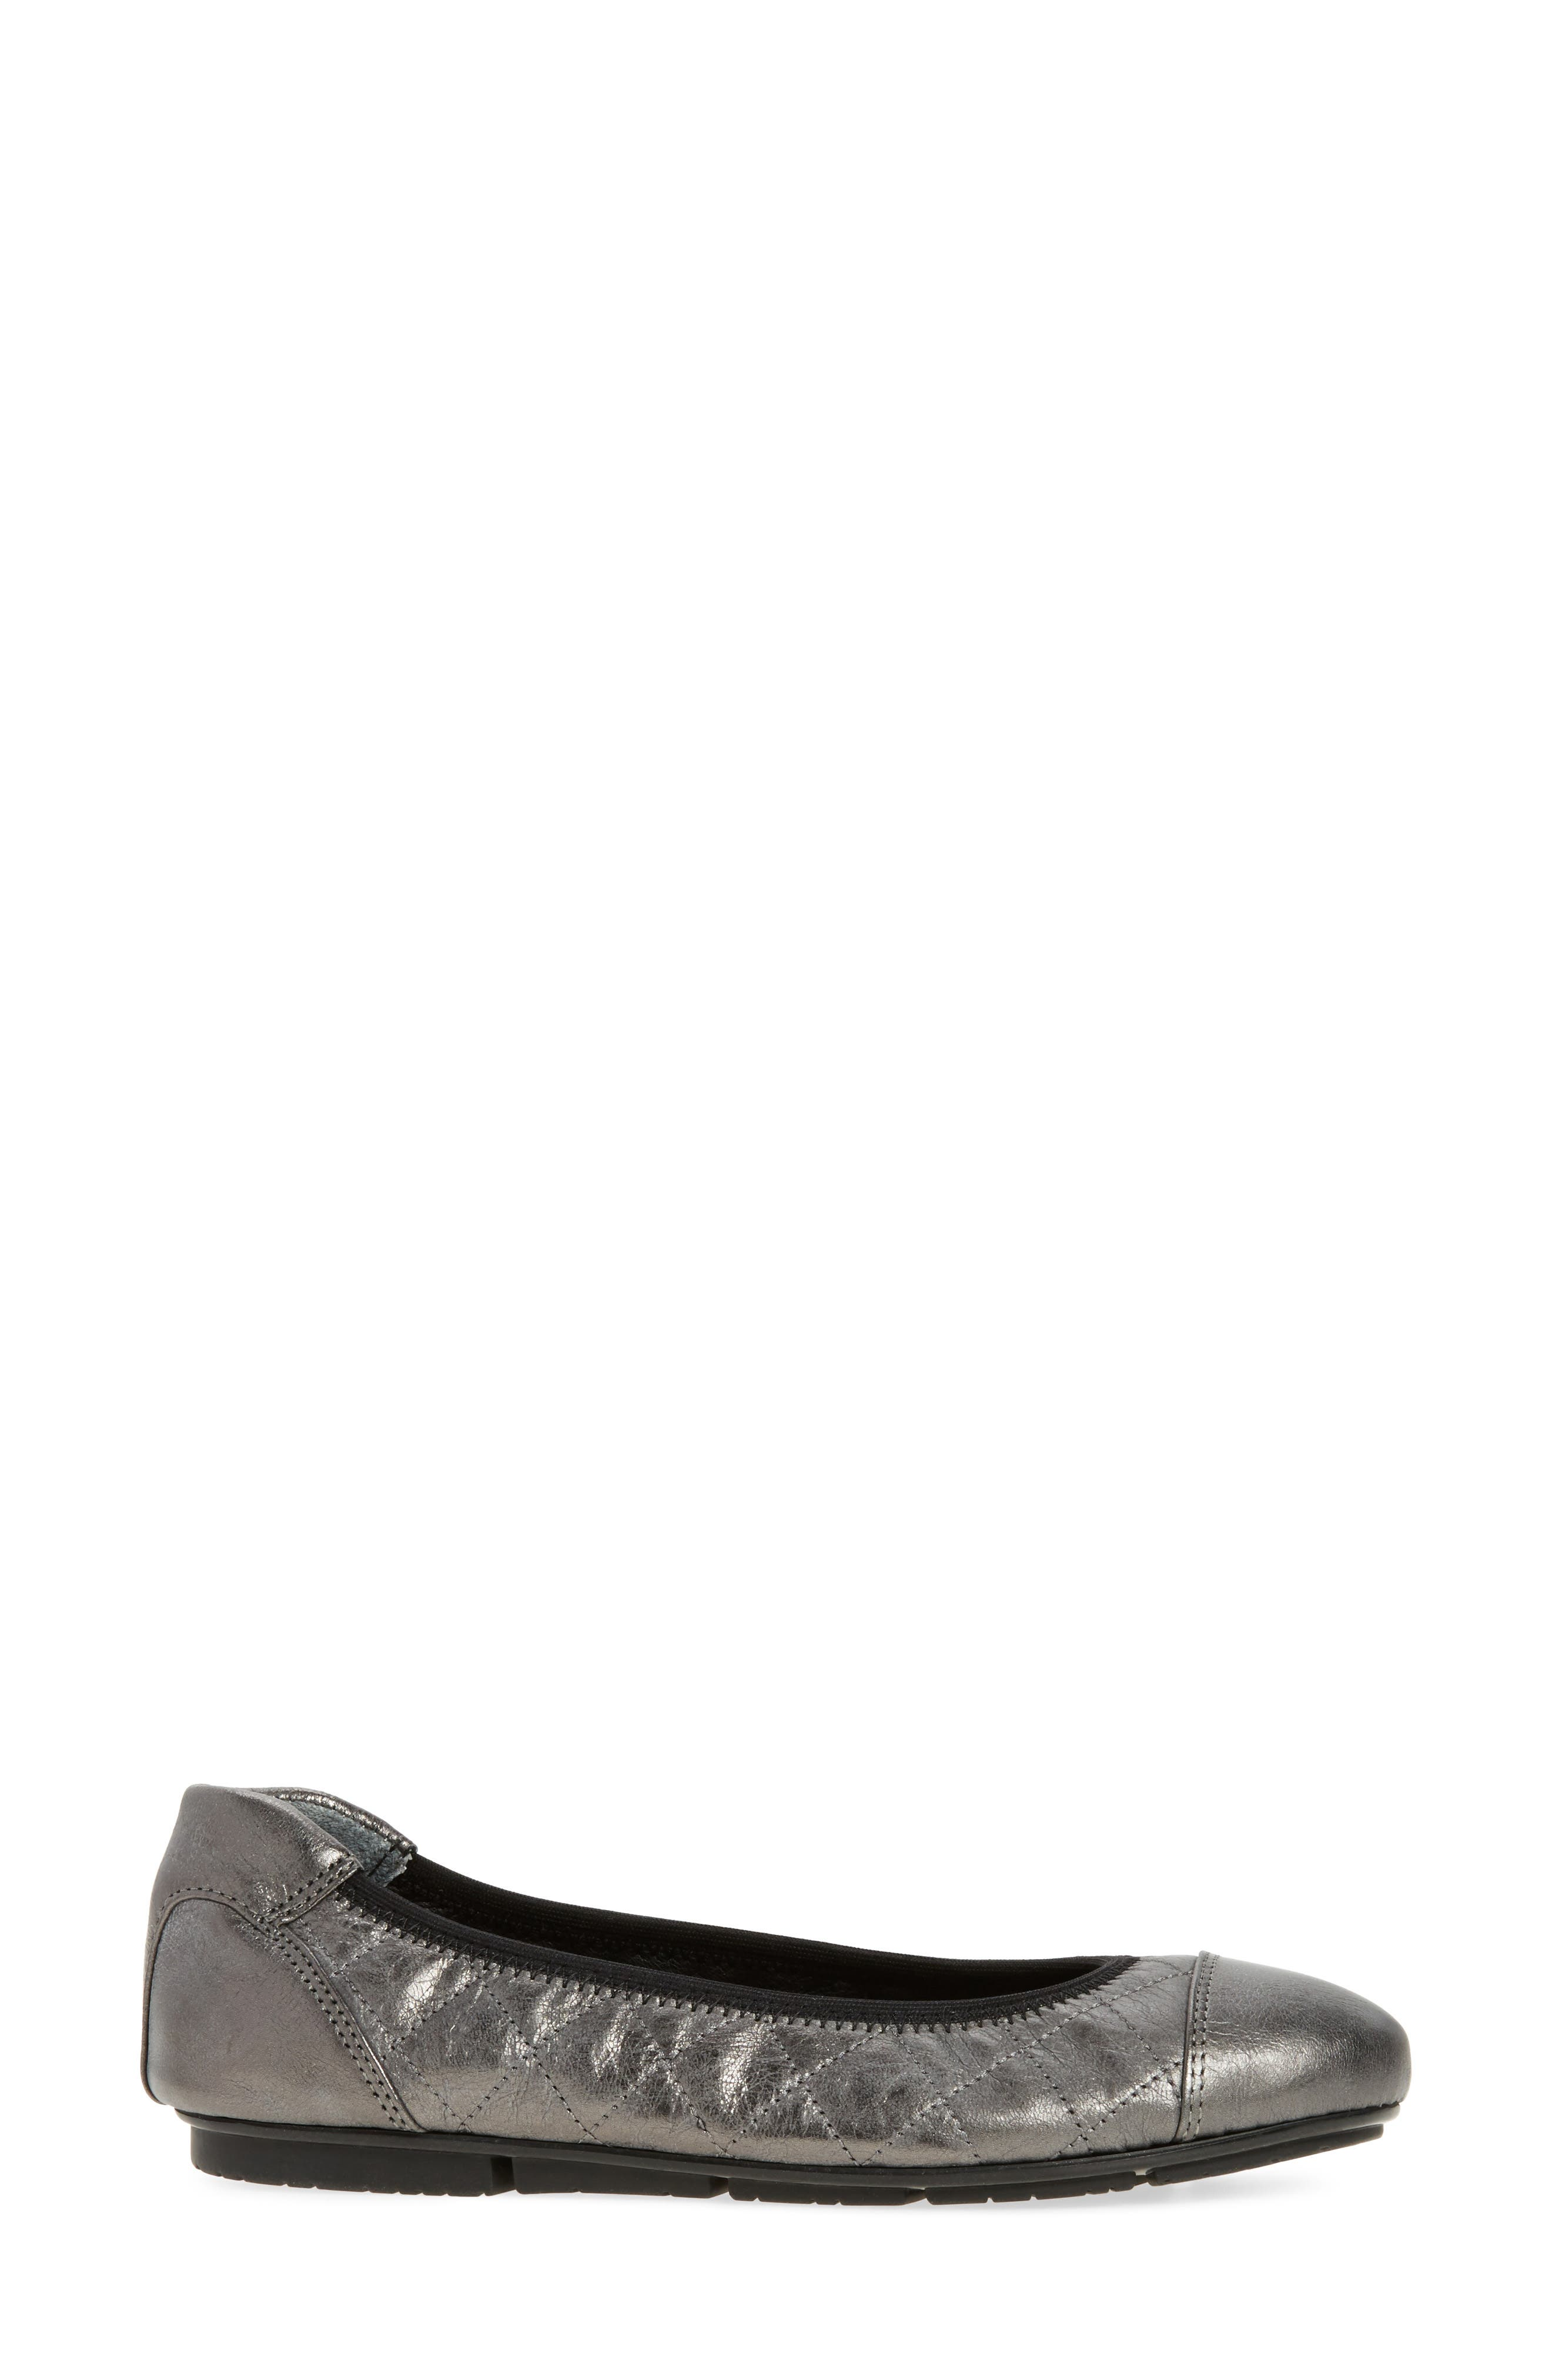 Ava Quilted Ballet Flat,                             Alternate thumbnail 8, color,